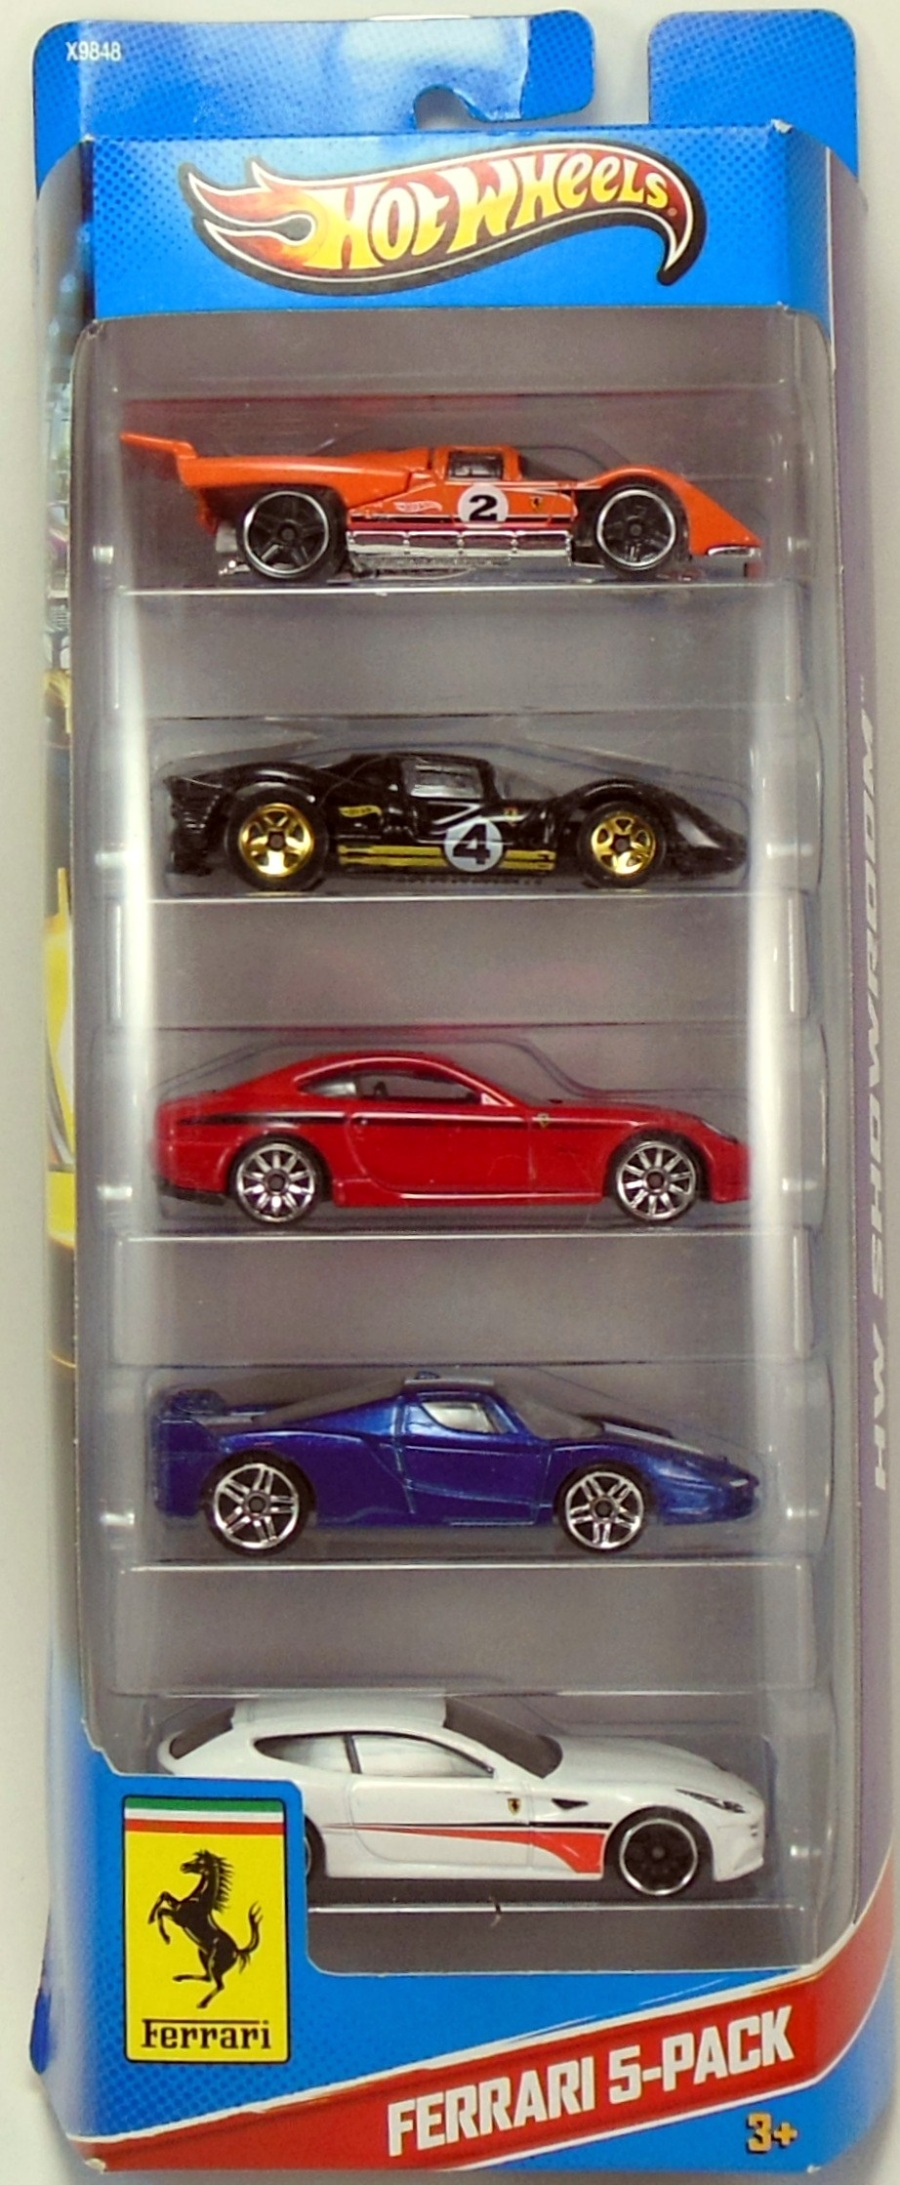 2013 5 Packs Hot Wheels Newsletter